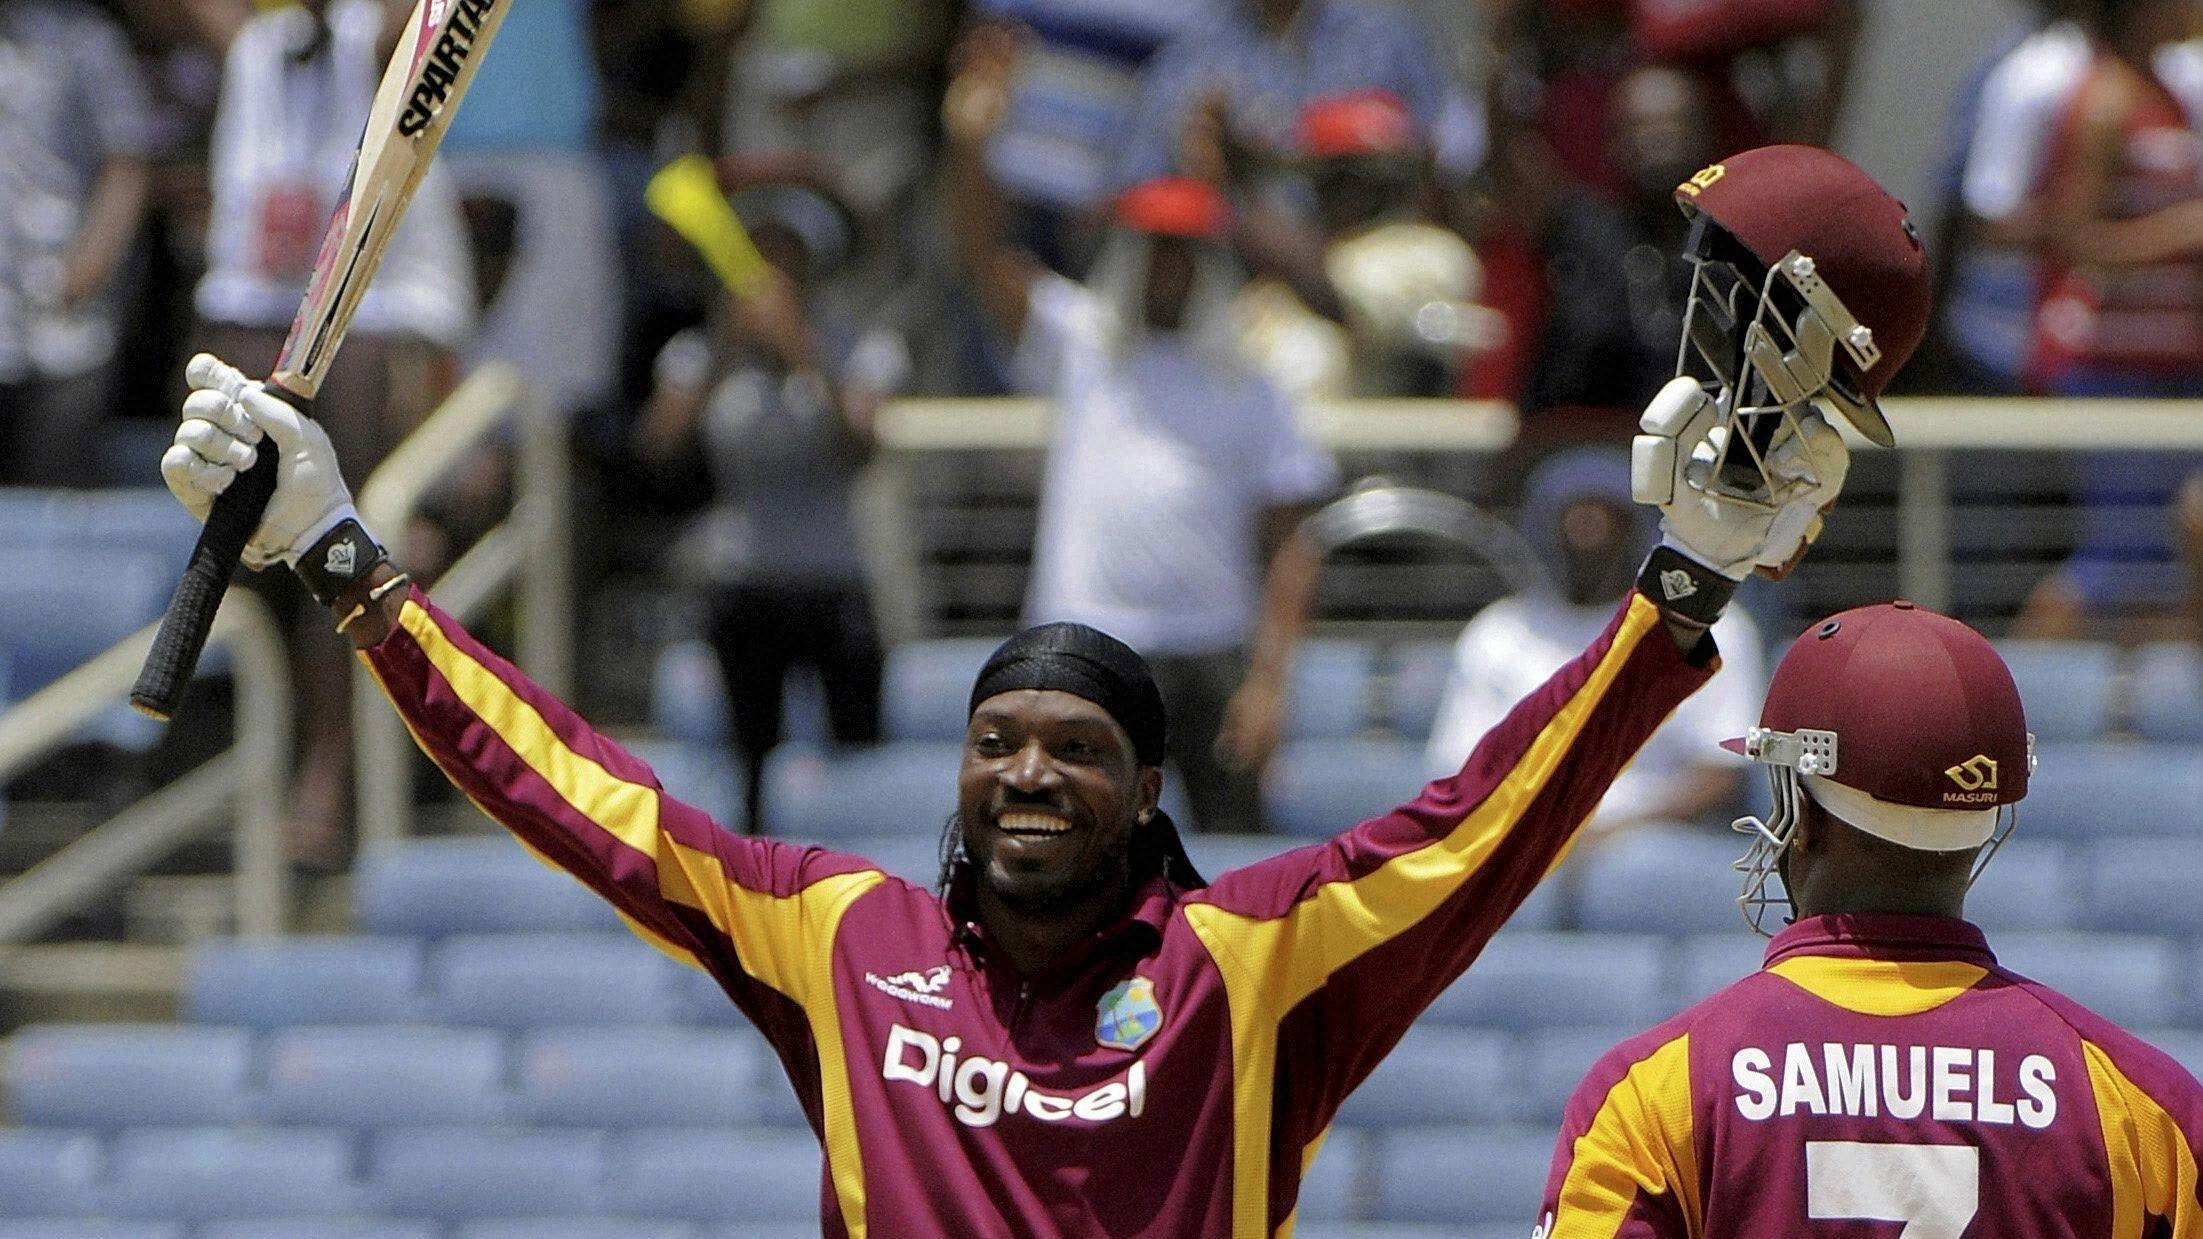 Wallpaper download cricket - Chris Gayle Wallpapers